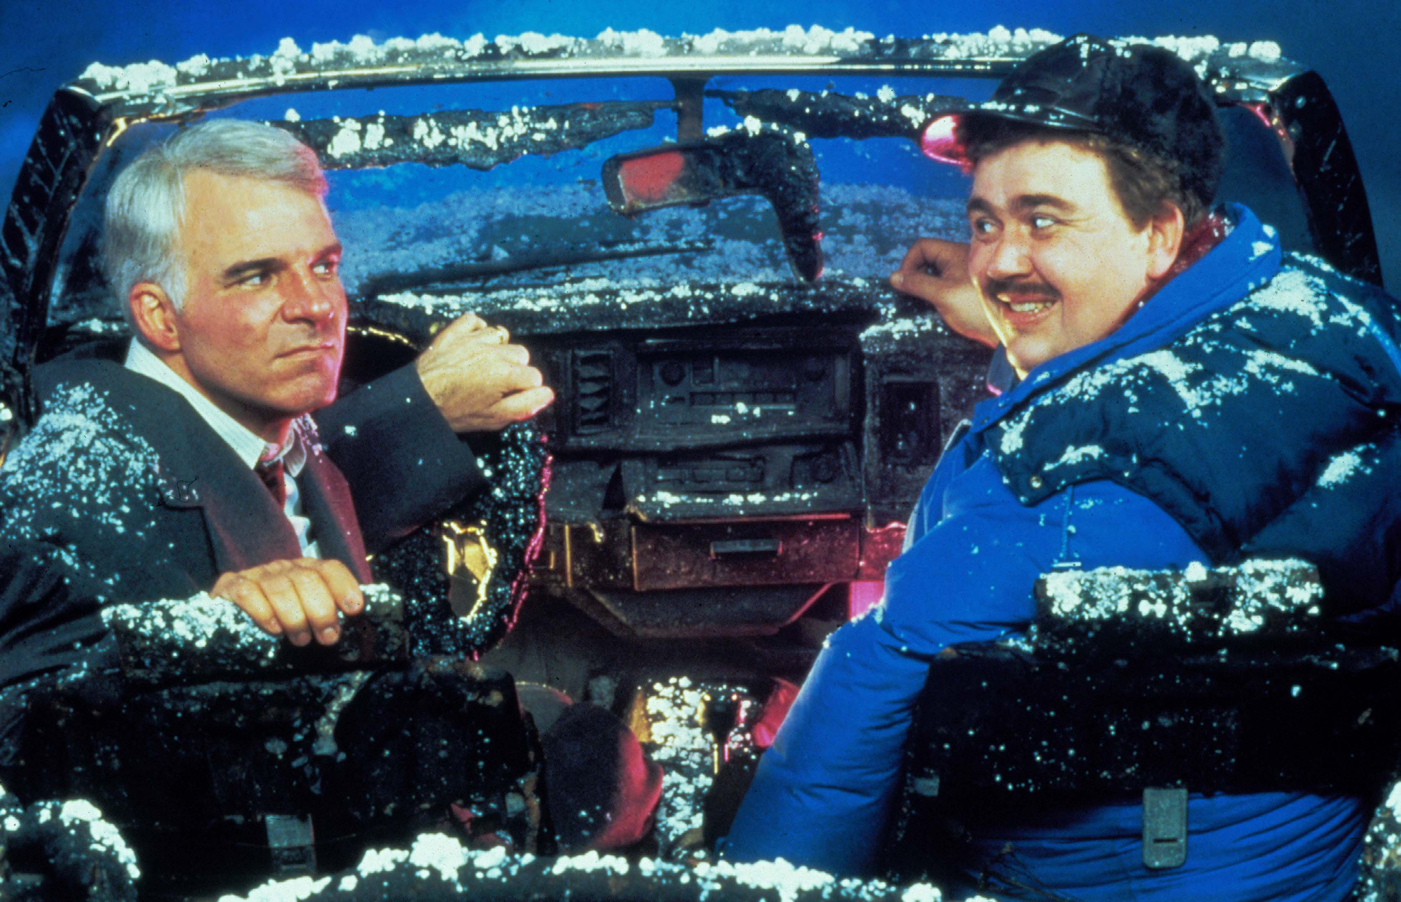 Why 'Planes, Trains and Automobiles' Is the Ultimate Thanksgiving Movie